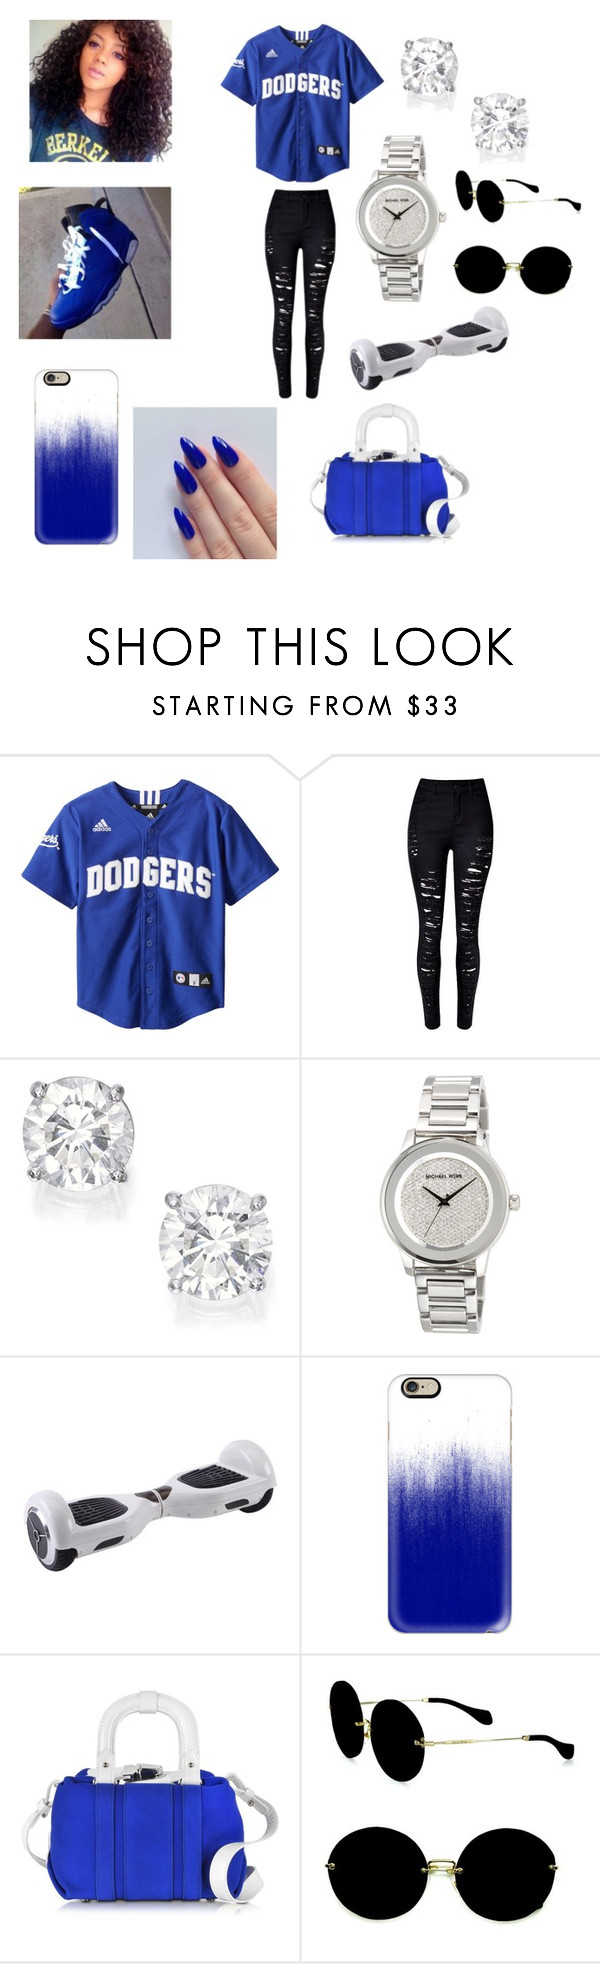 """Dodgers All Day"" by zyriajones ❤ liked on Polyvore featuring MICHAEL Michael Kors, Casetify, Carven and Miu Miu"